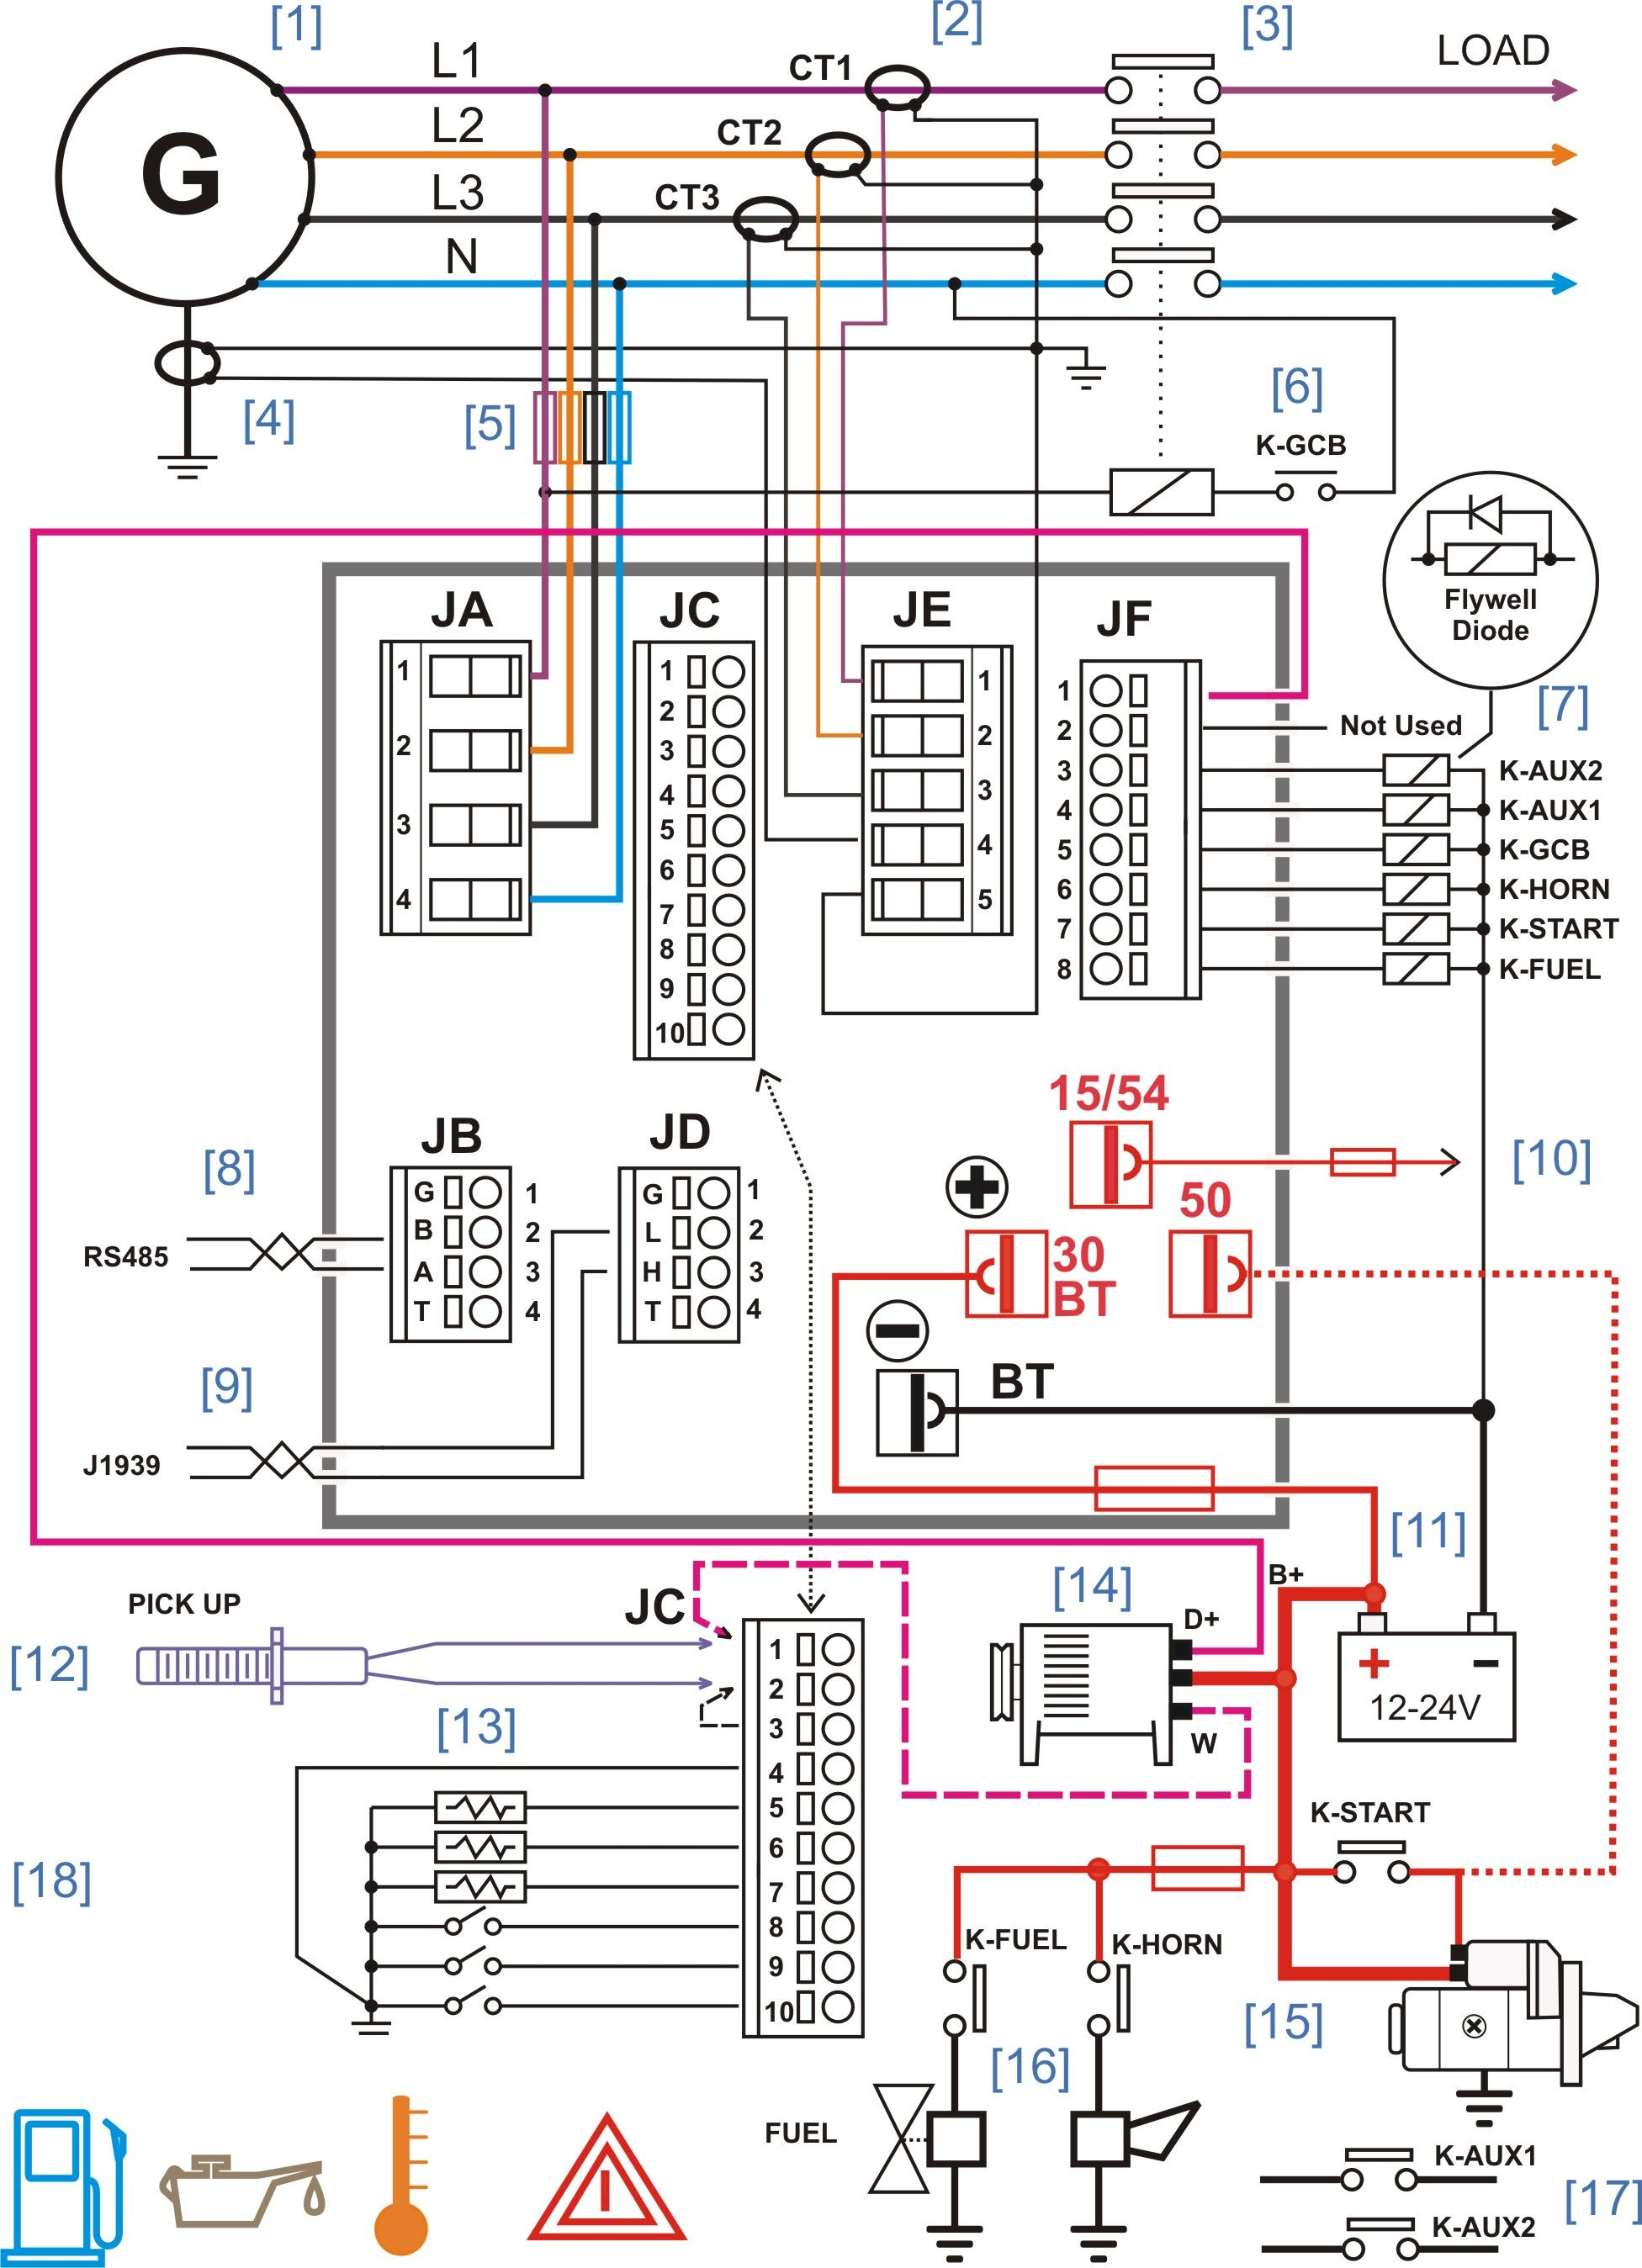 electrical panel wiring diagram 250 electrical panel wiring diagram